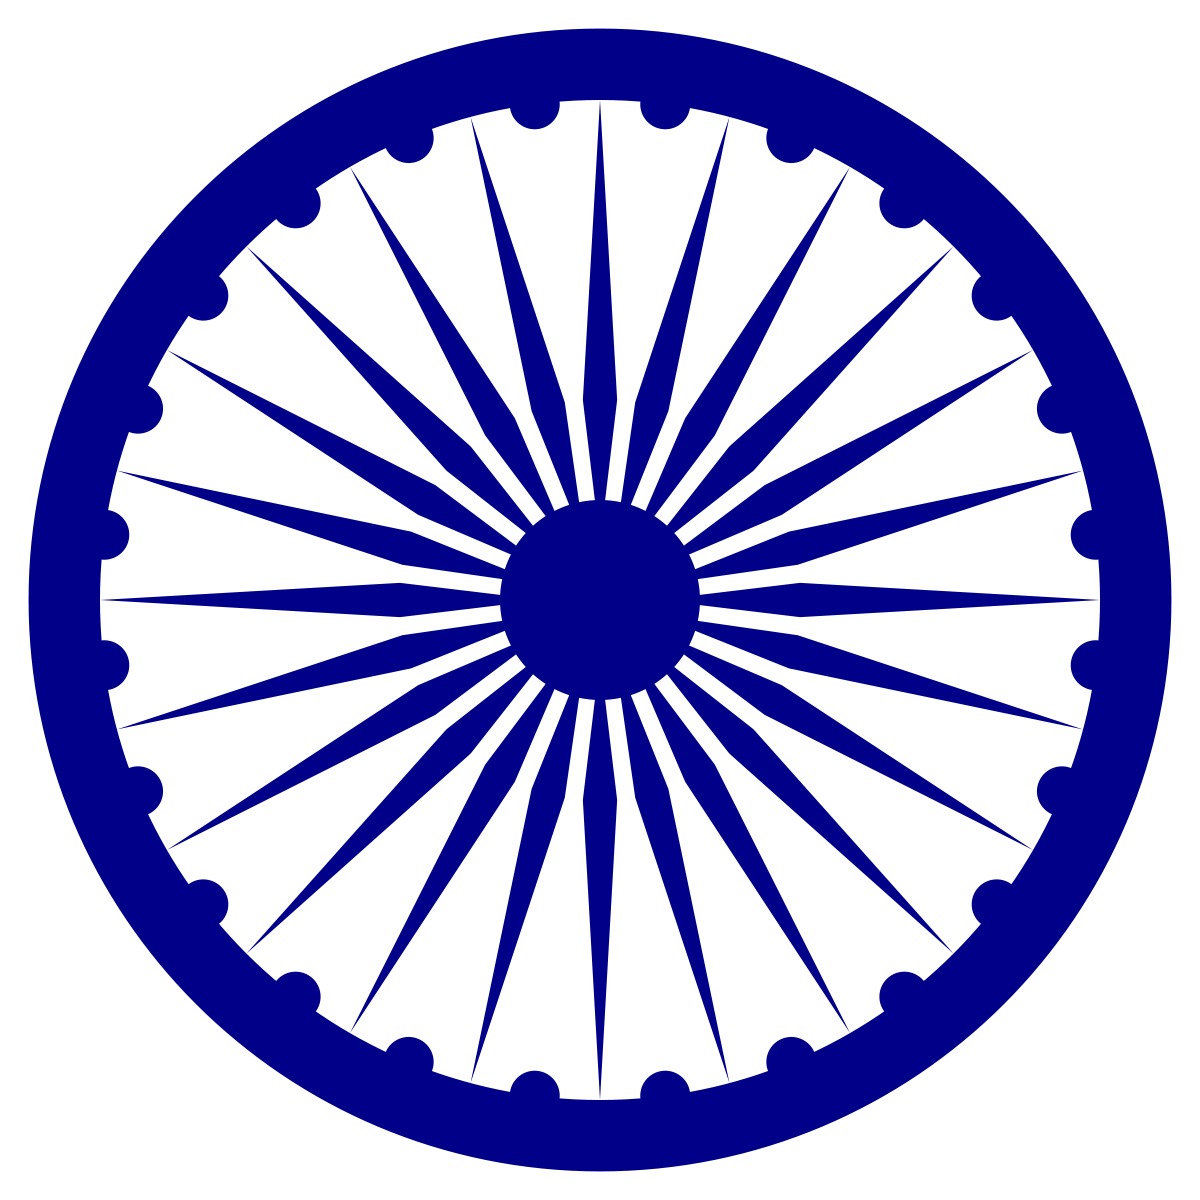 Ashoka logo clipart picture library library Ashoka Chakra - Wikipedia picture library library